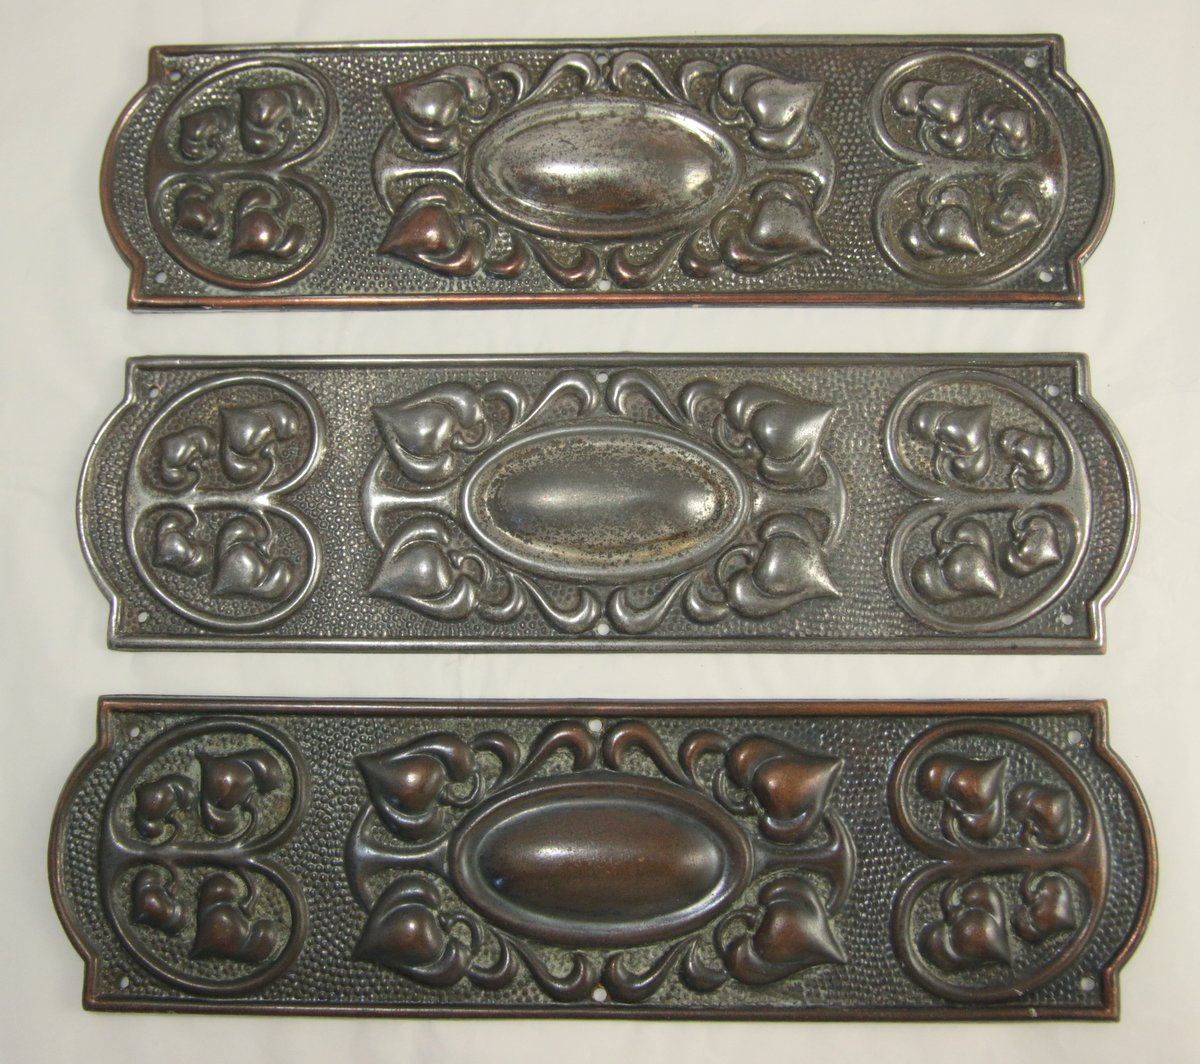 Small Pewter Door Kick Plate: 3 Metal Finger Door Plates Brass / Pewter Look Art Nouveau